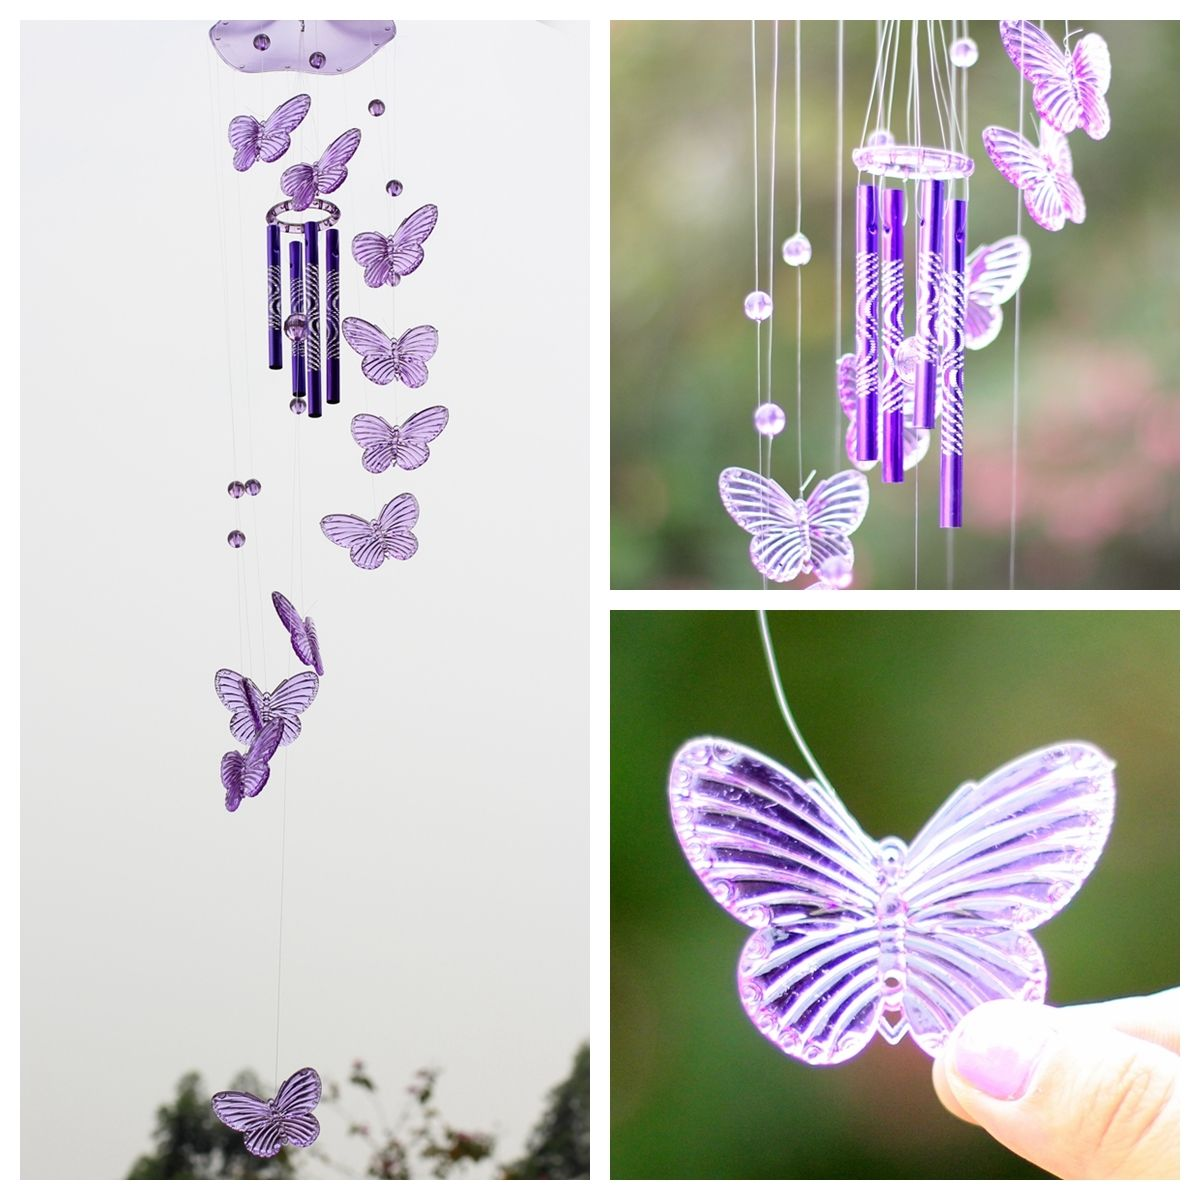 Creative Crystal Erfly Wind Chime Bell Ornament Garden